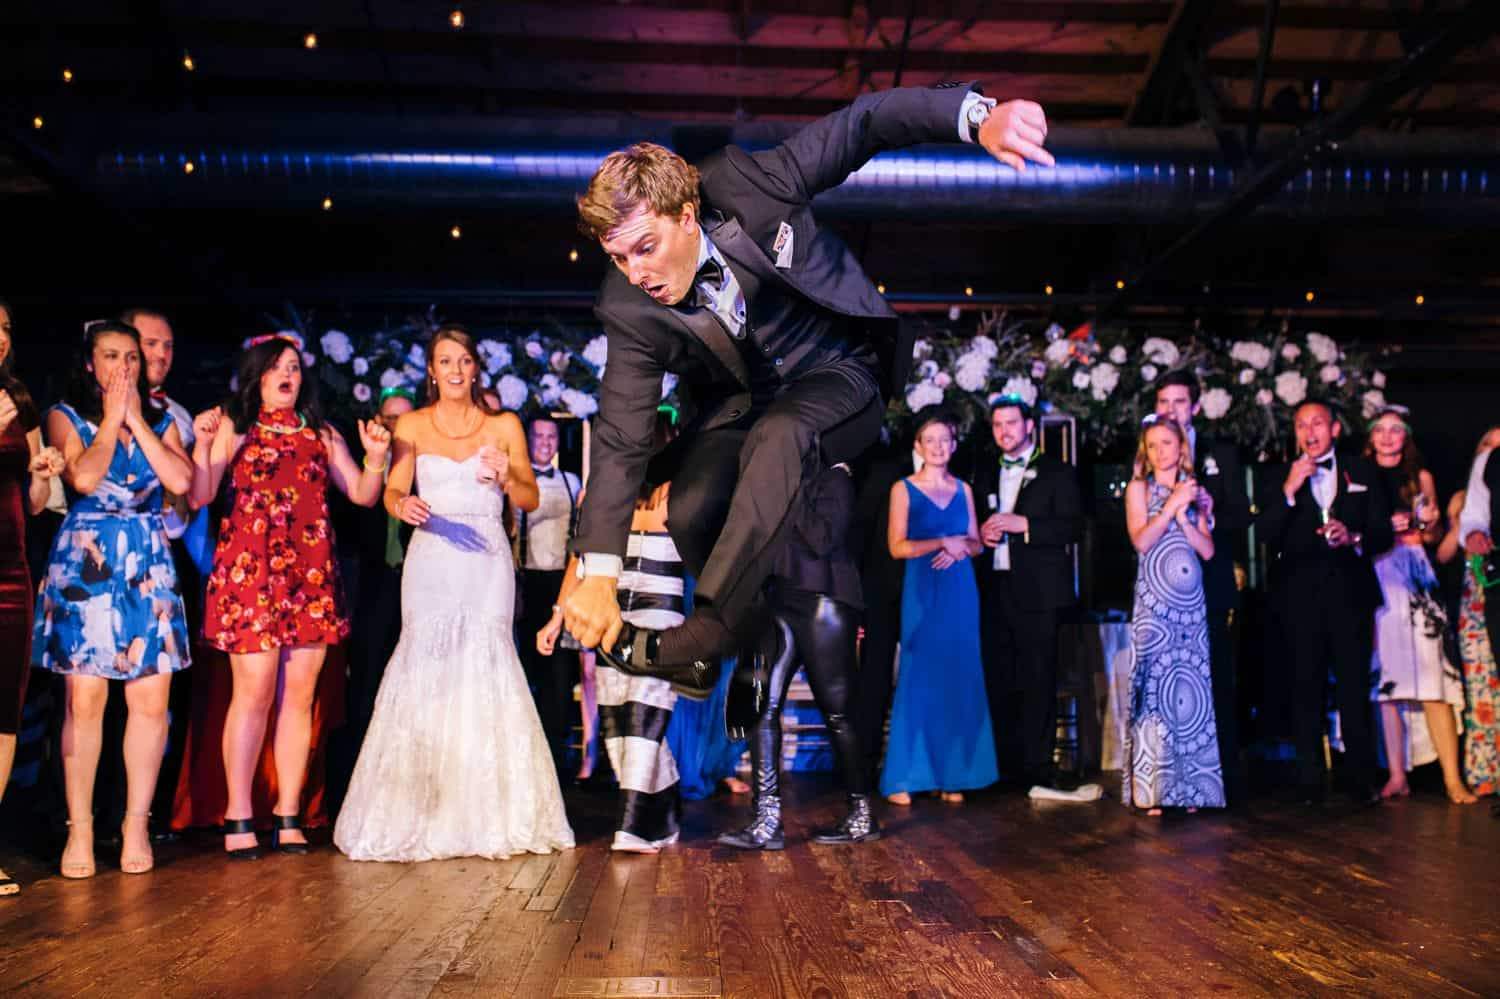 A groomsman leaps into the air in an impressive dance move during a wedding reception